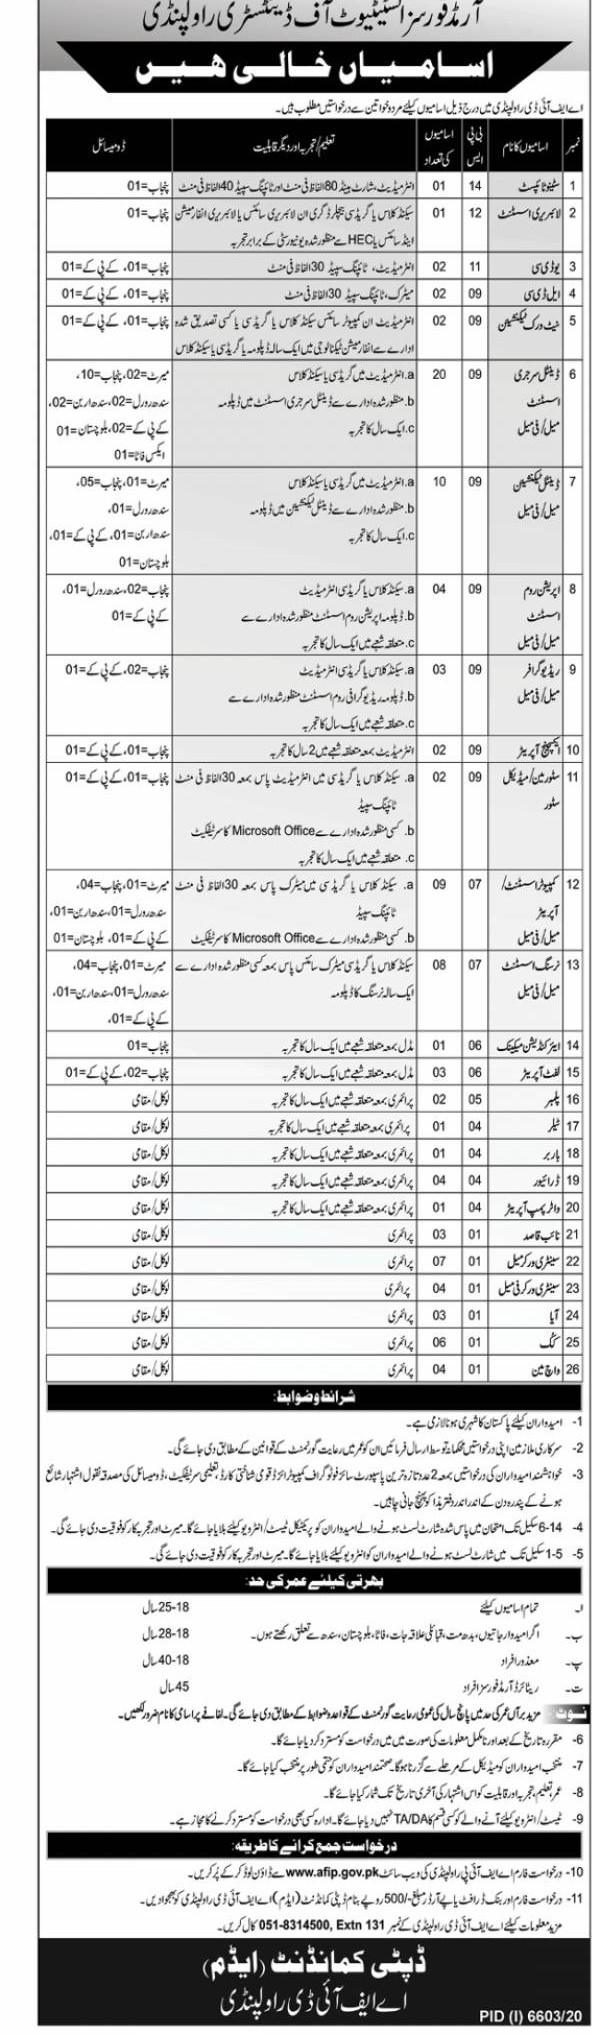 Armed Forces Institute Of Dentistry Jobs